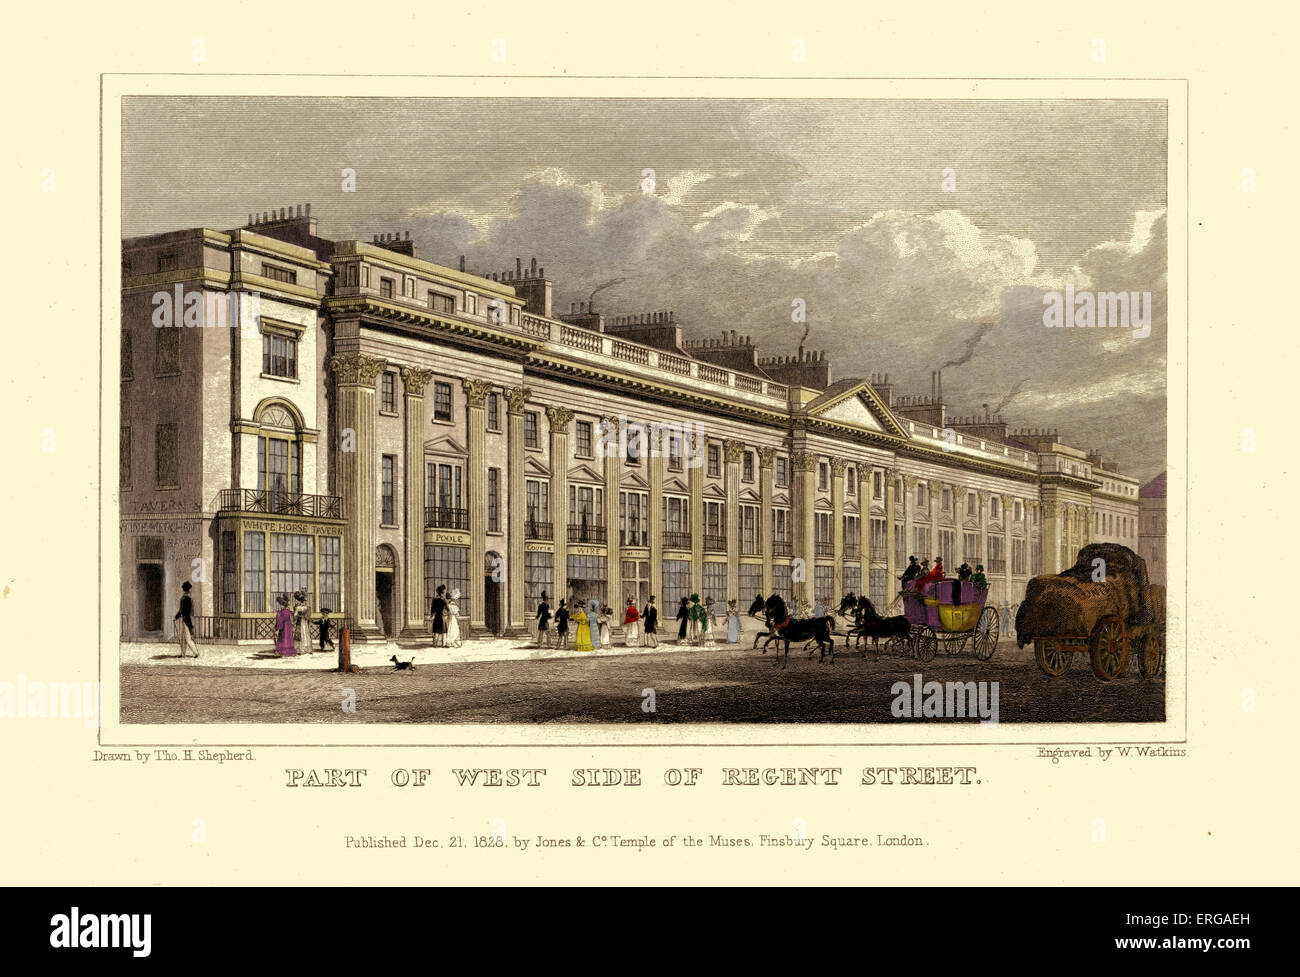 London Views:  Part of West Side of Regent Street.  Drawn by Thomas Hosmer Shepherd 1792 – 1864. Engraved by W. - Stock Image